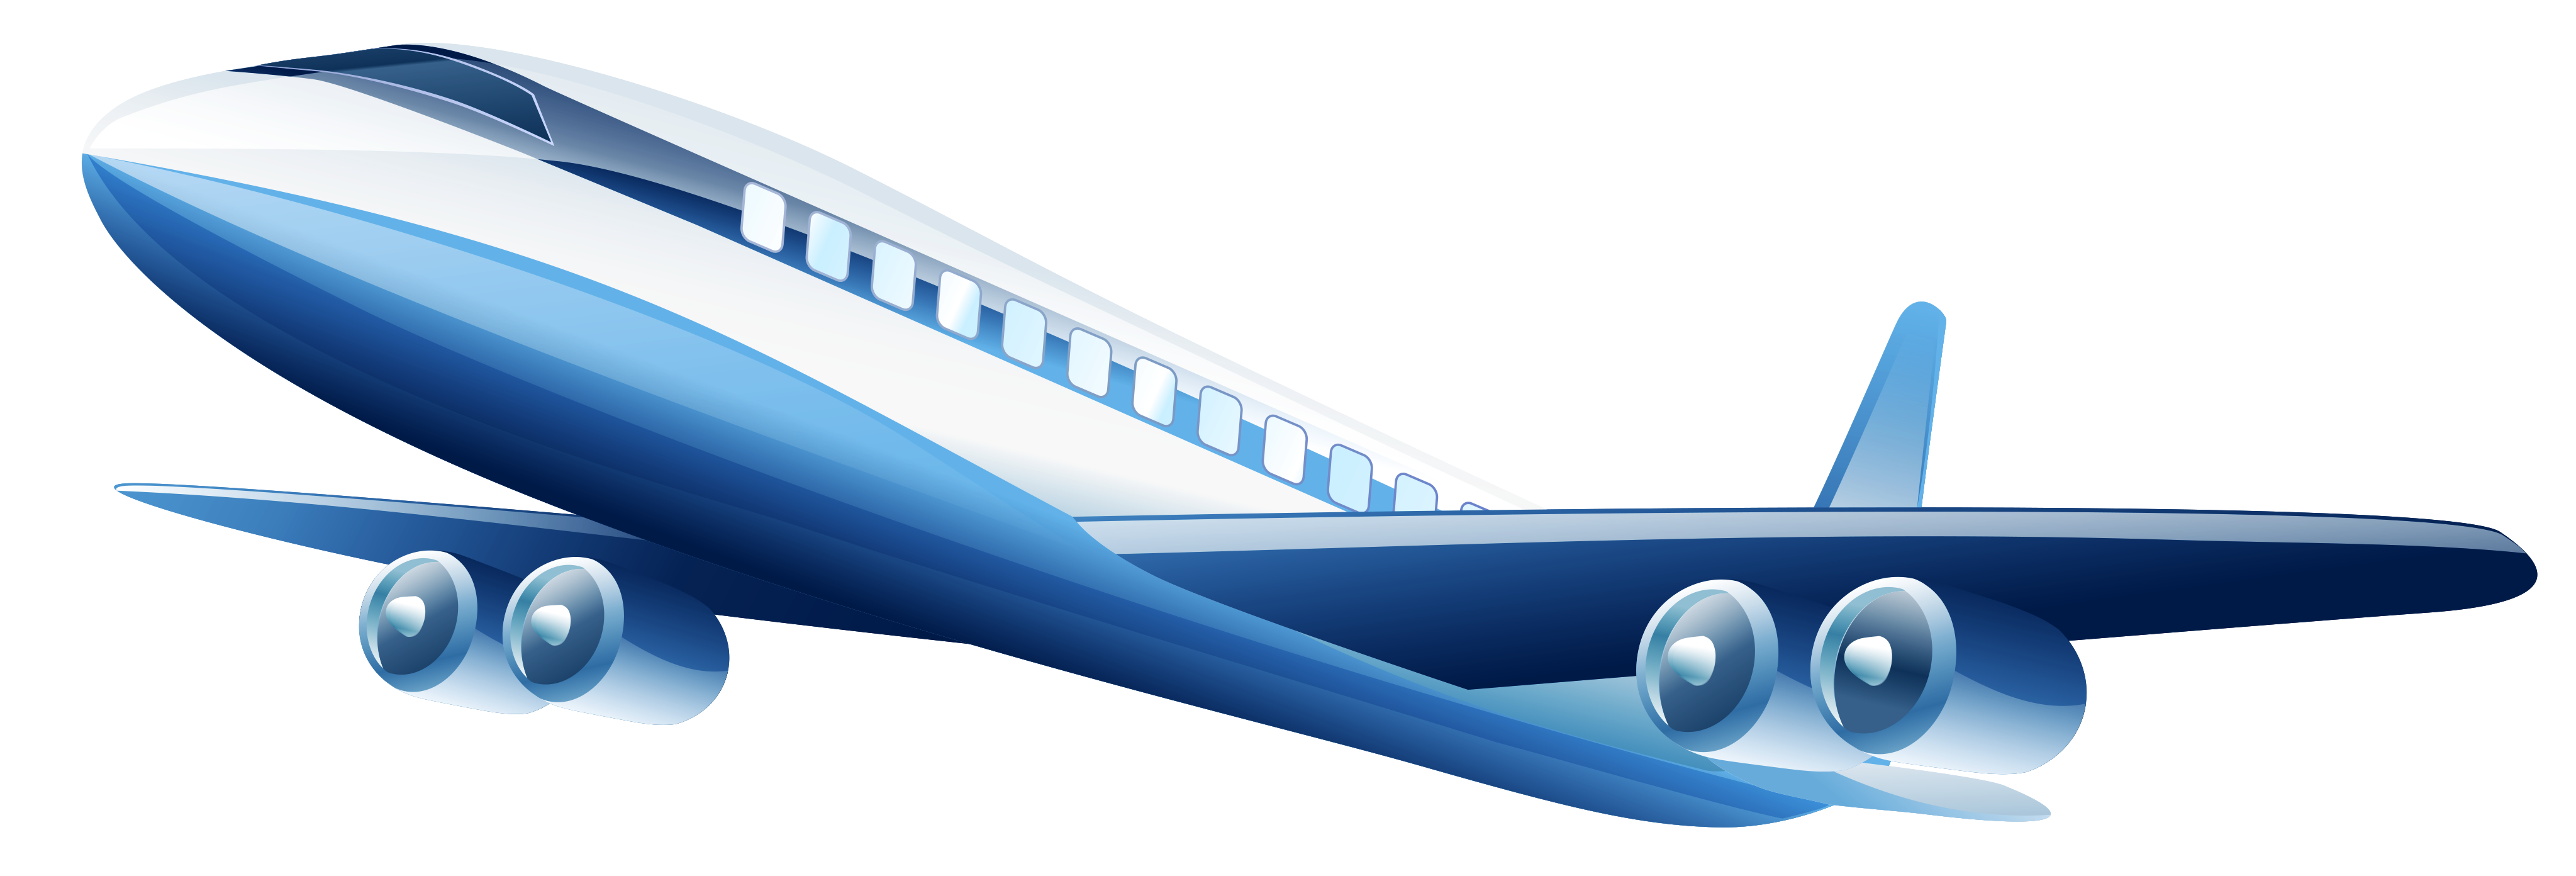 Airplane PNG Image - Plane PNG - Free PNG HD Planes